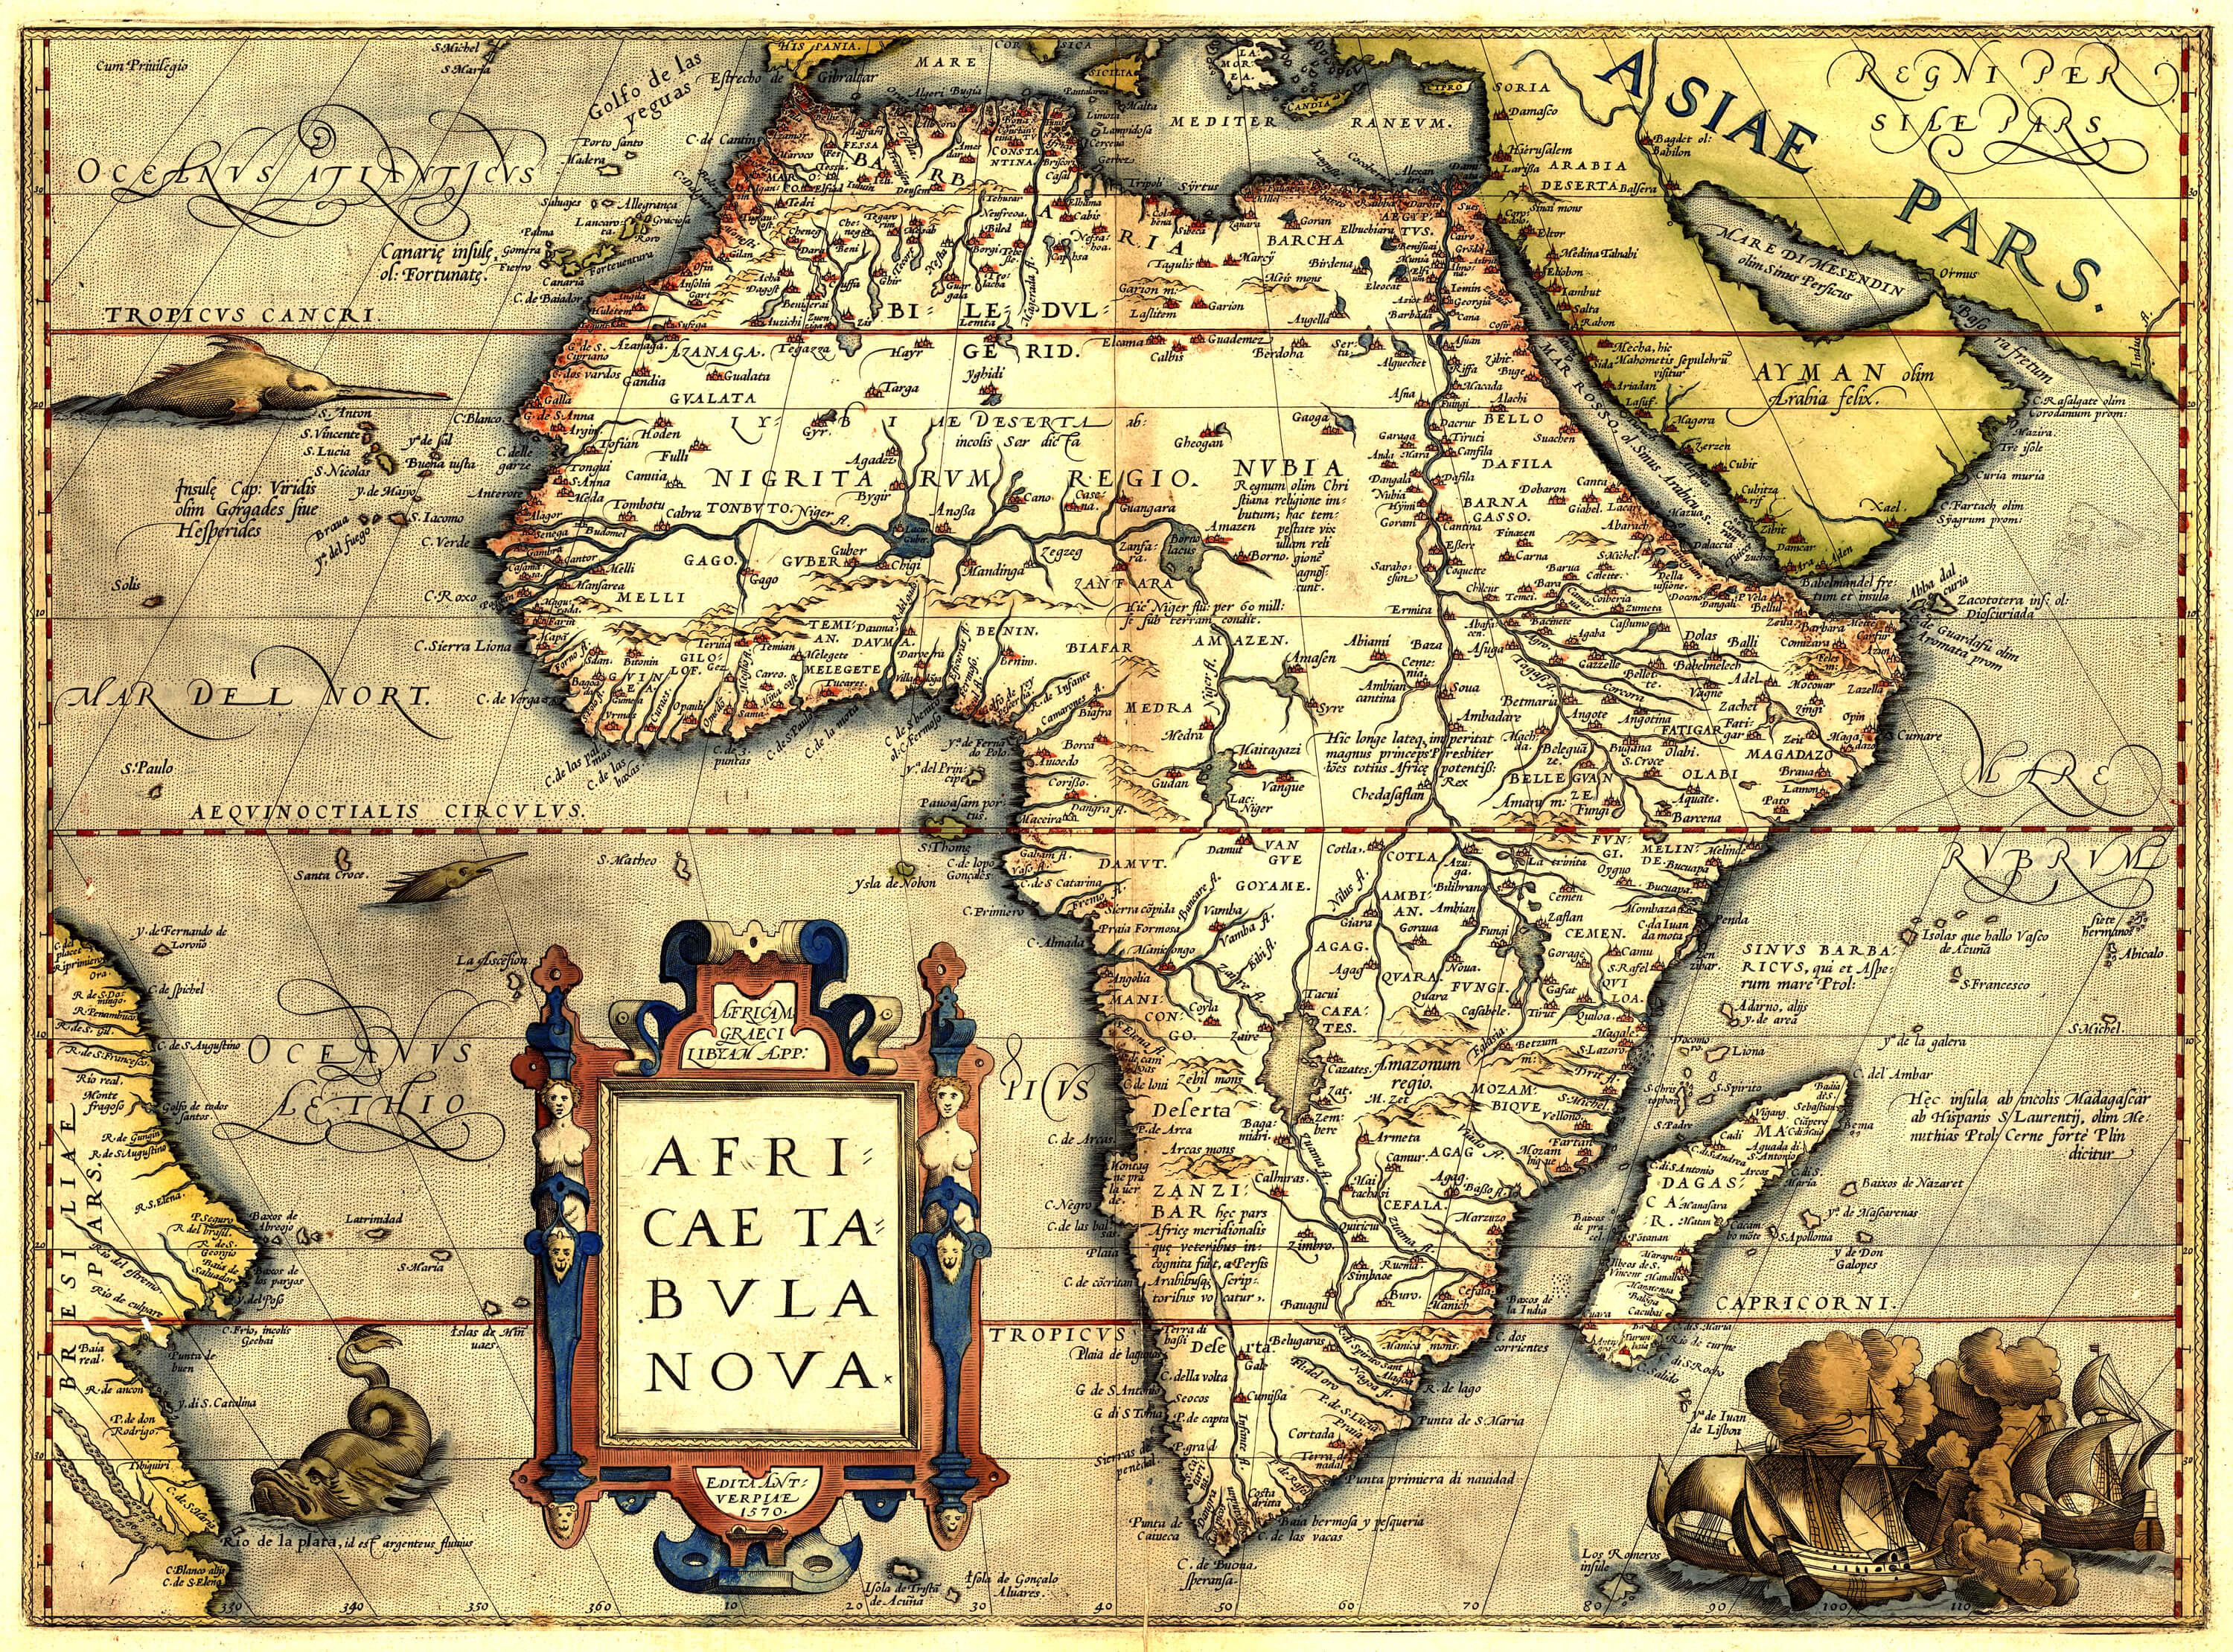 World atlas abraham ortelius 1565 bro 07 l brown collection ort bro 07 004 africa gumiabroncs Choice Image